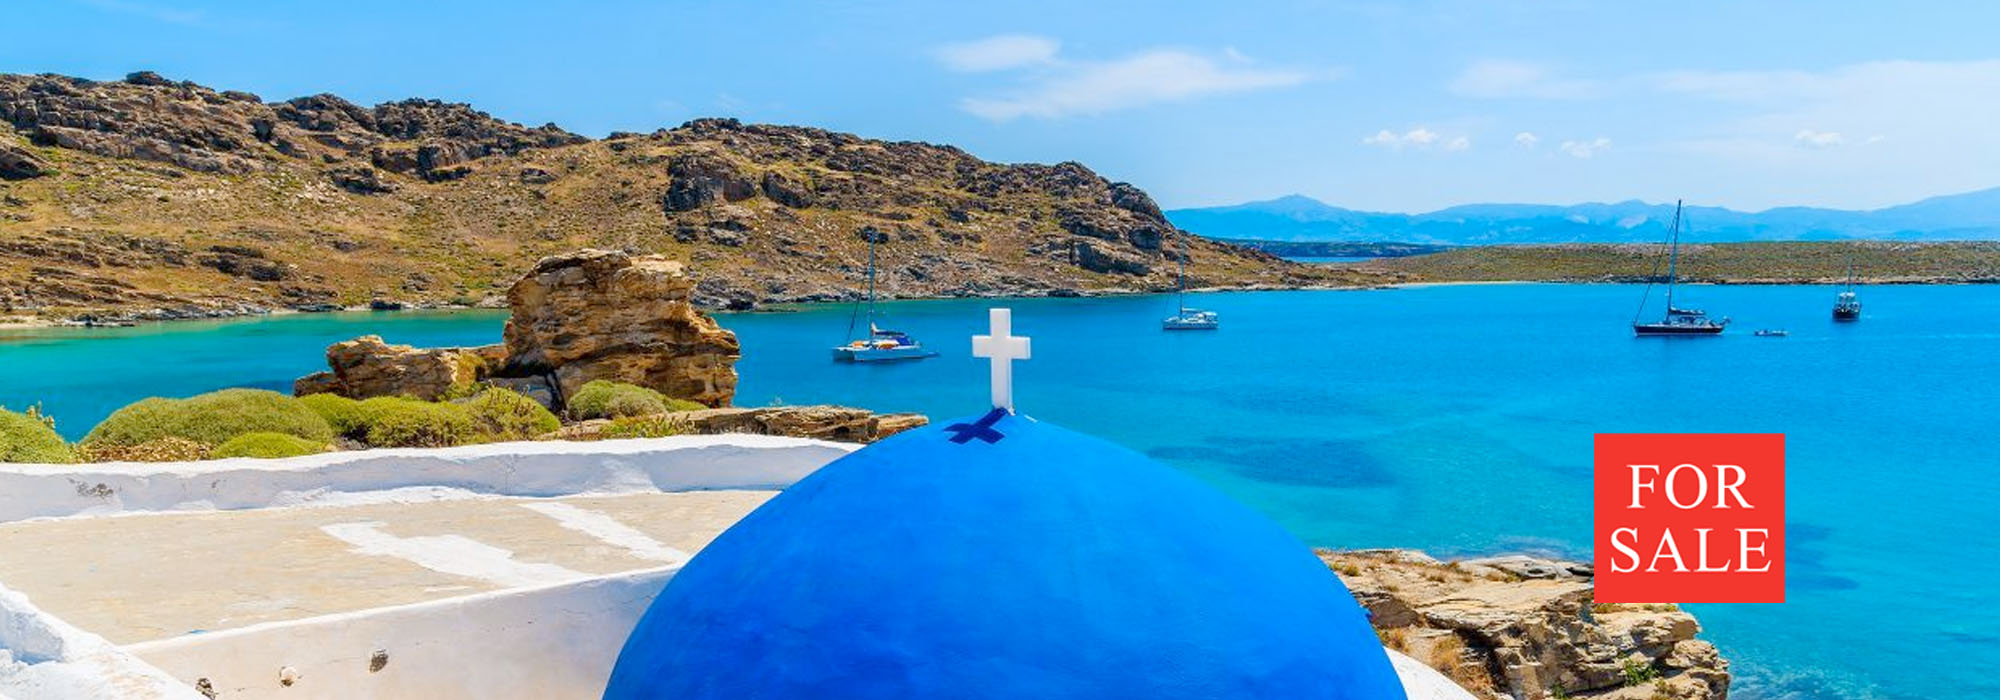 Paros Real estate